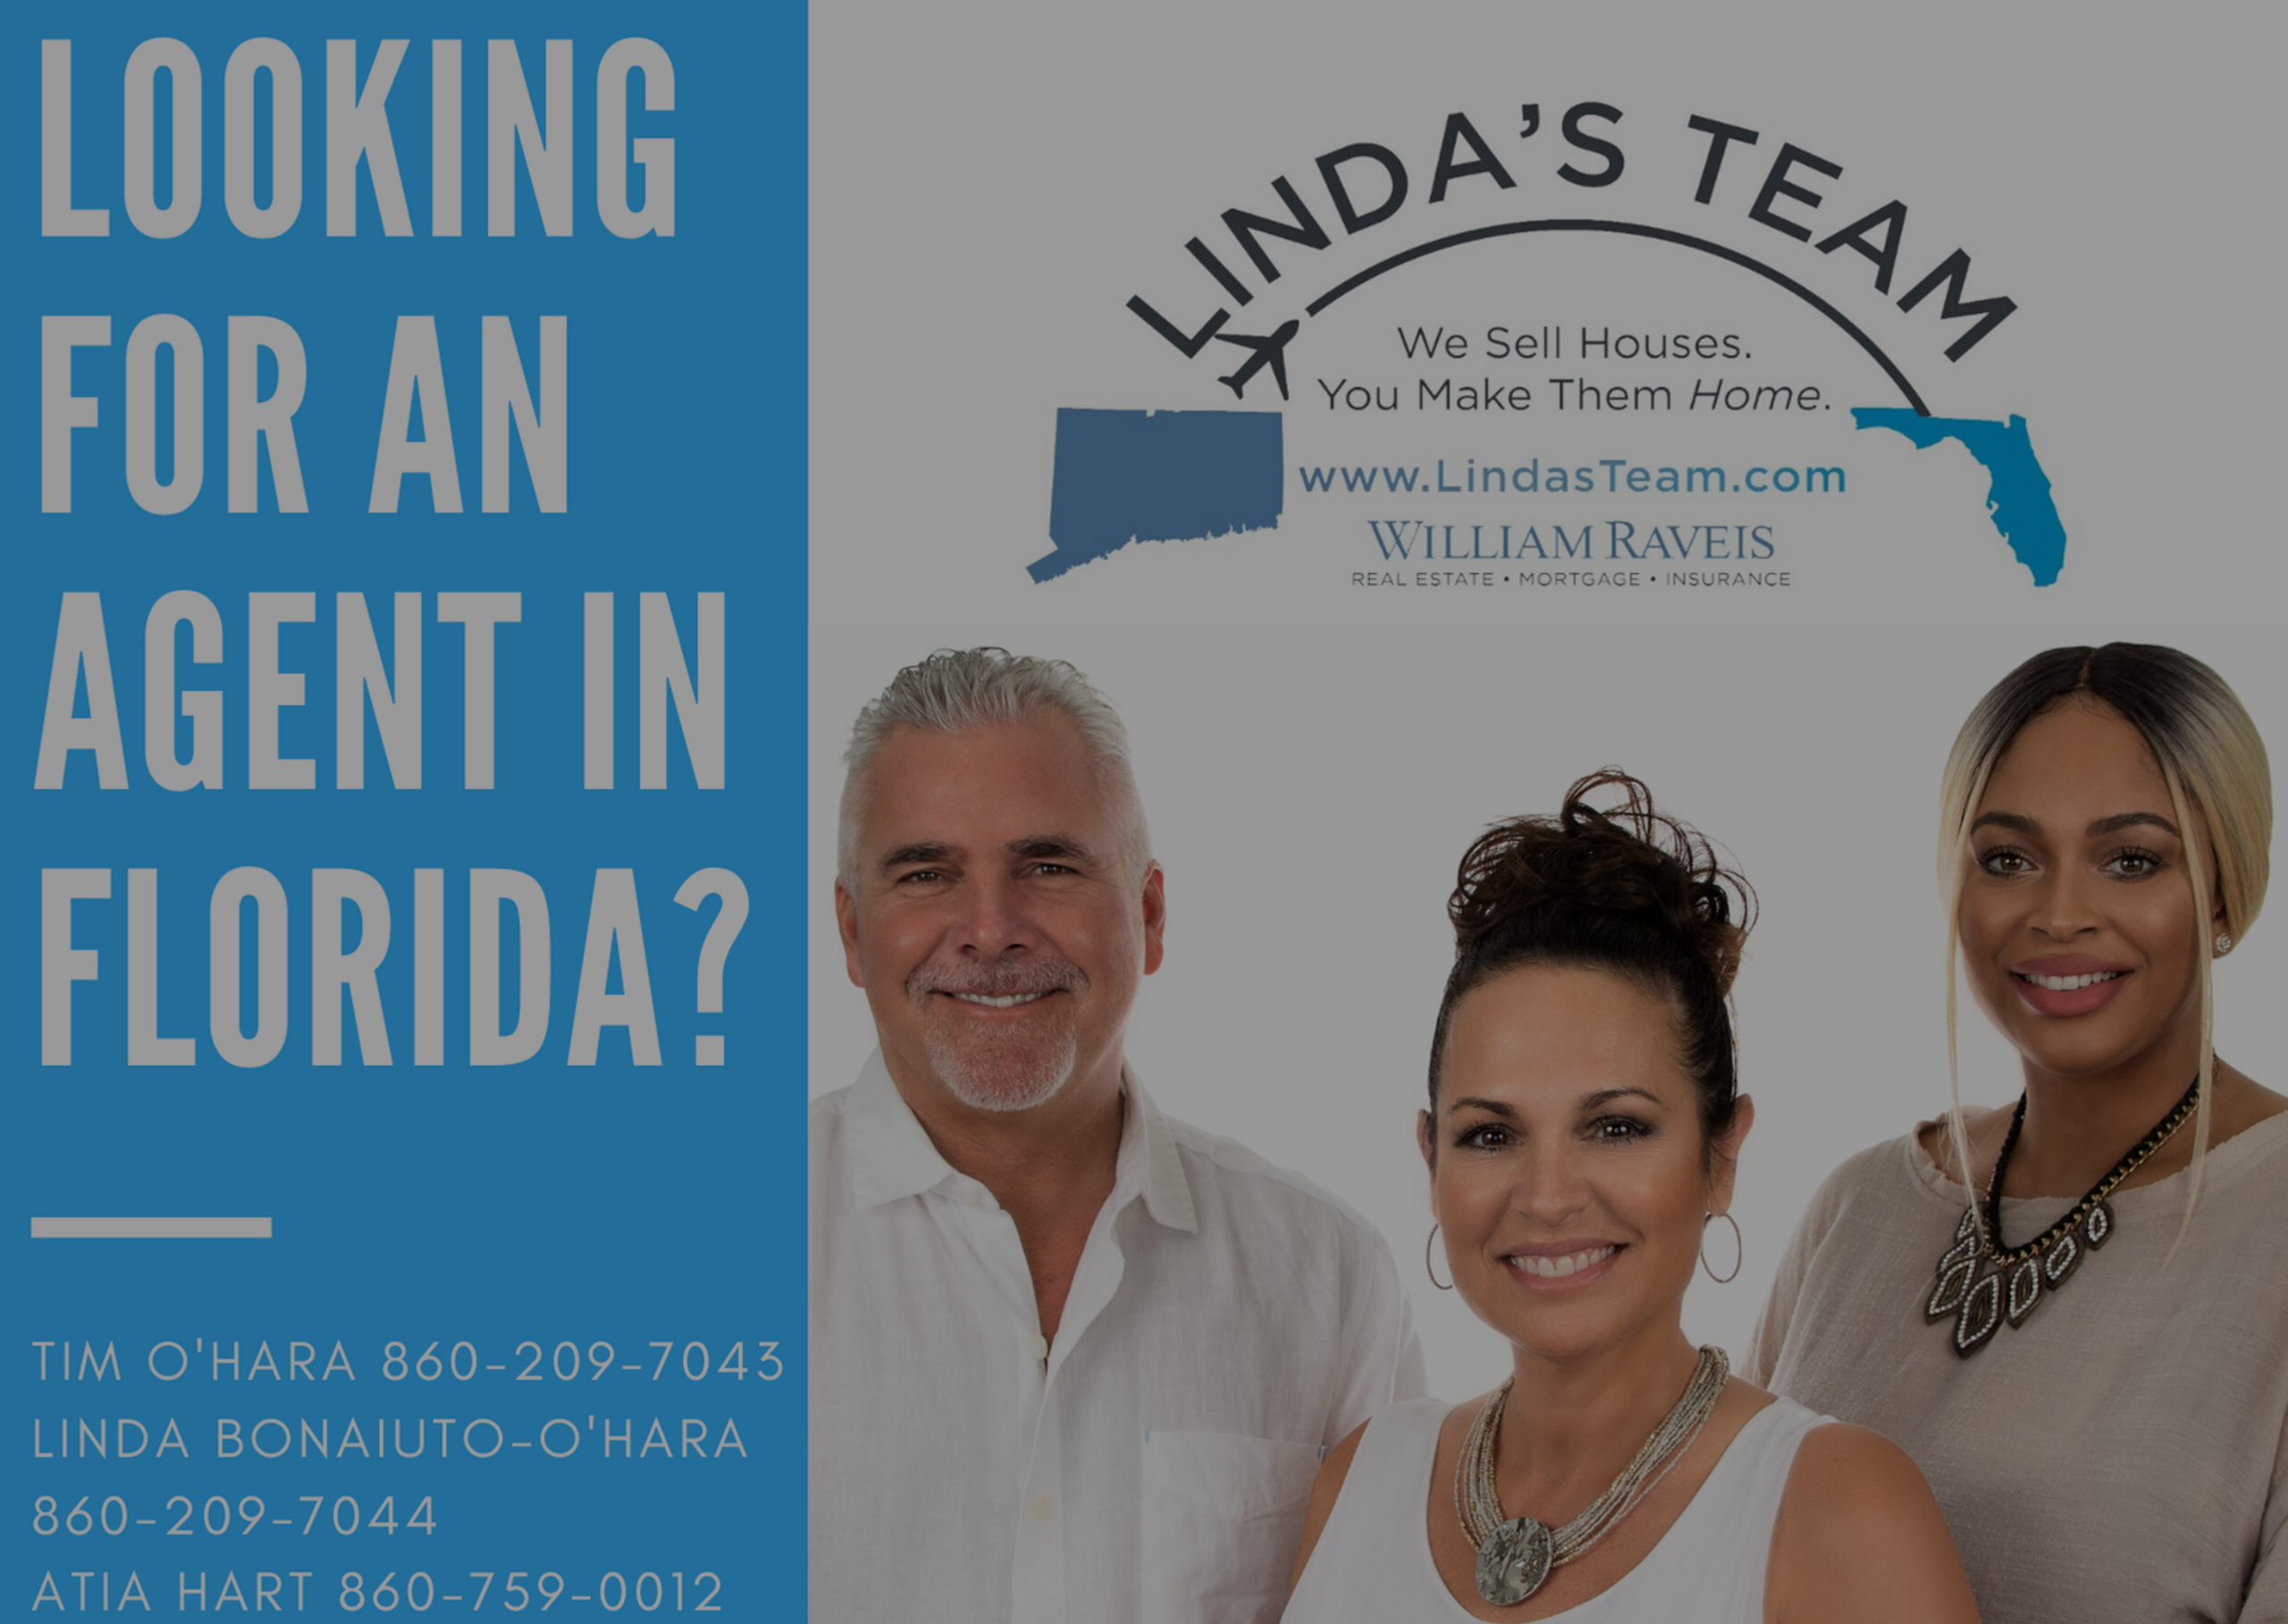 Linda's Team is now also in Florida!